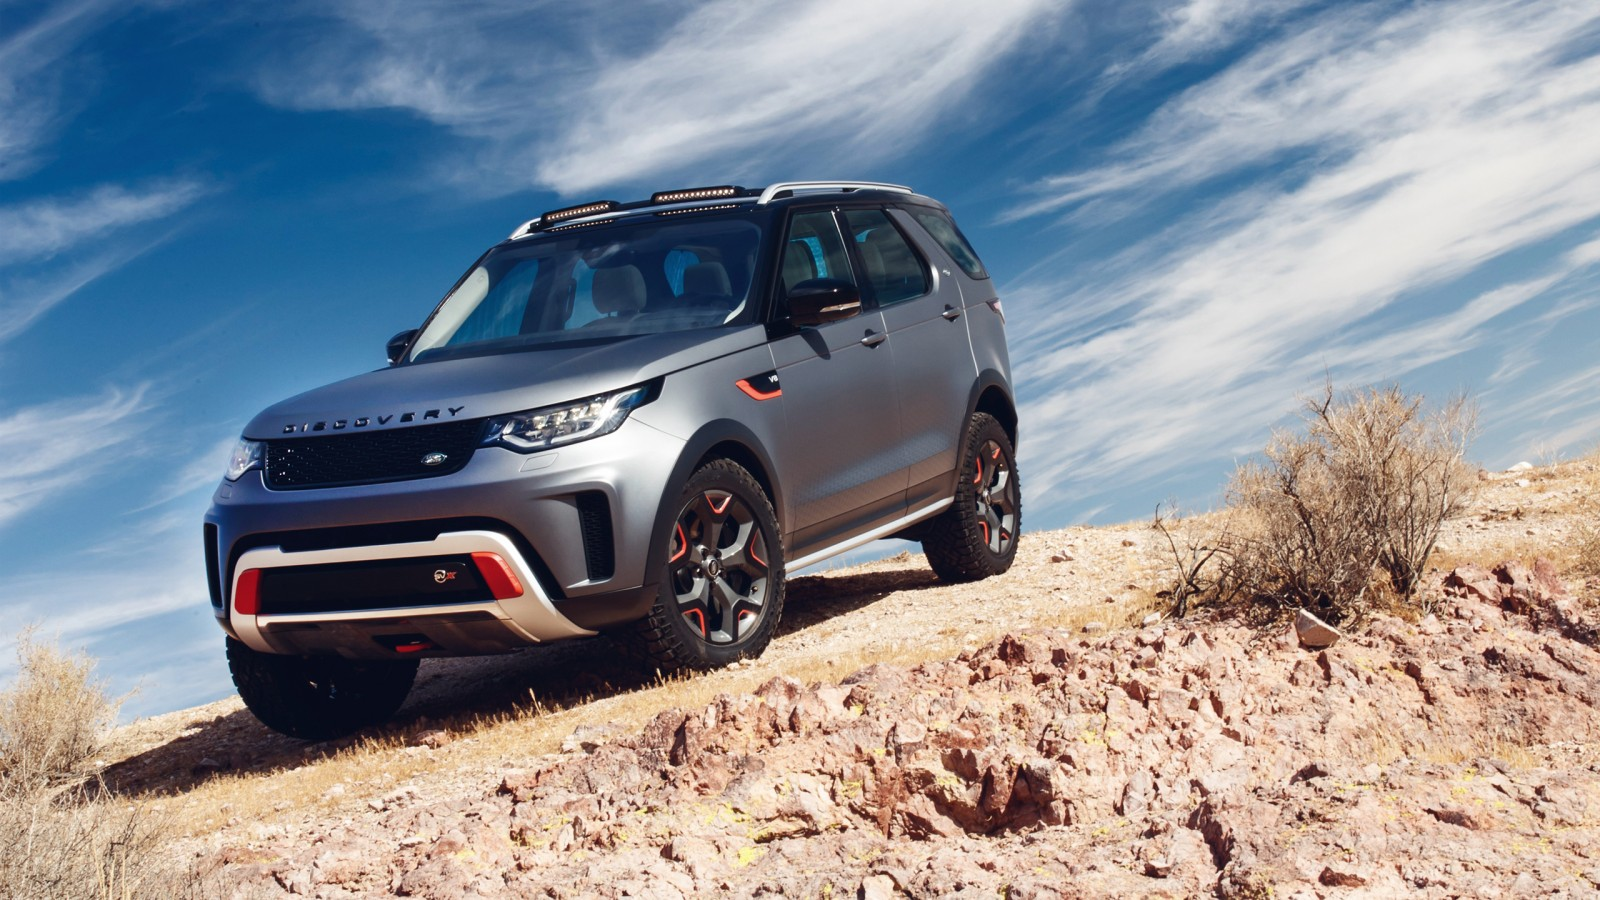 Range Rover Discovery Sport >> 2018 Land Rover Discovery SVX 2 Wallpaper | HD Car ...